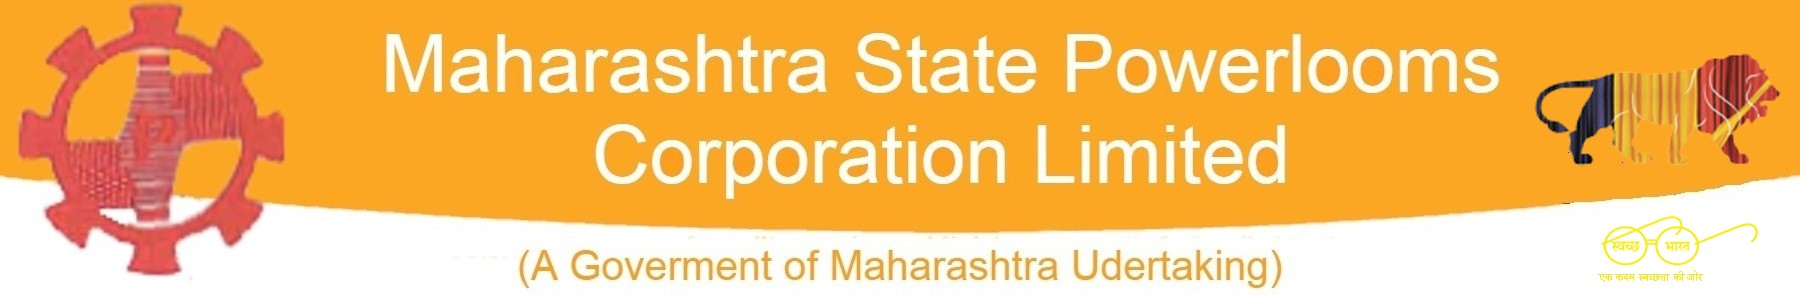 Maharashtra State Powerlooms Corporation Limited